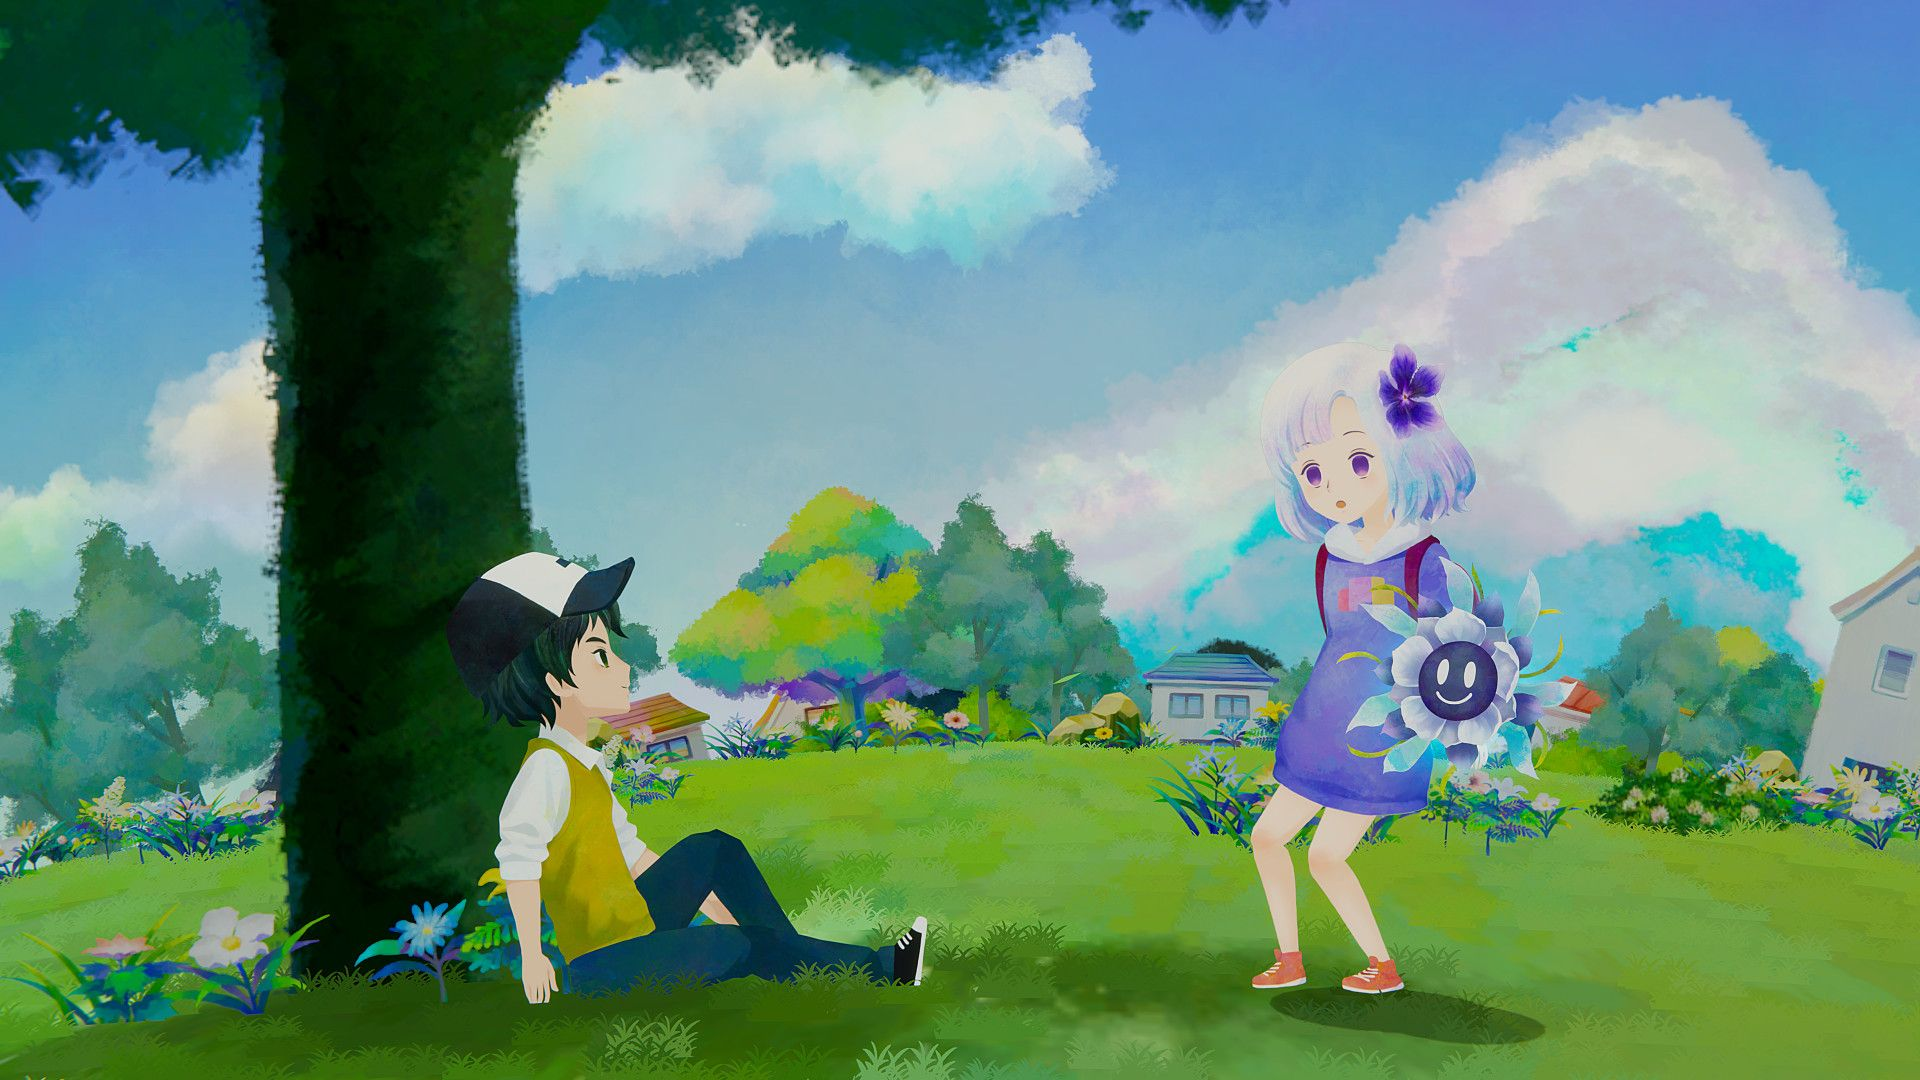 Sumire – A Beautiful Yet Dark Story Hidden in a Colorful World